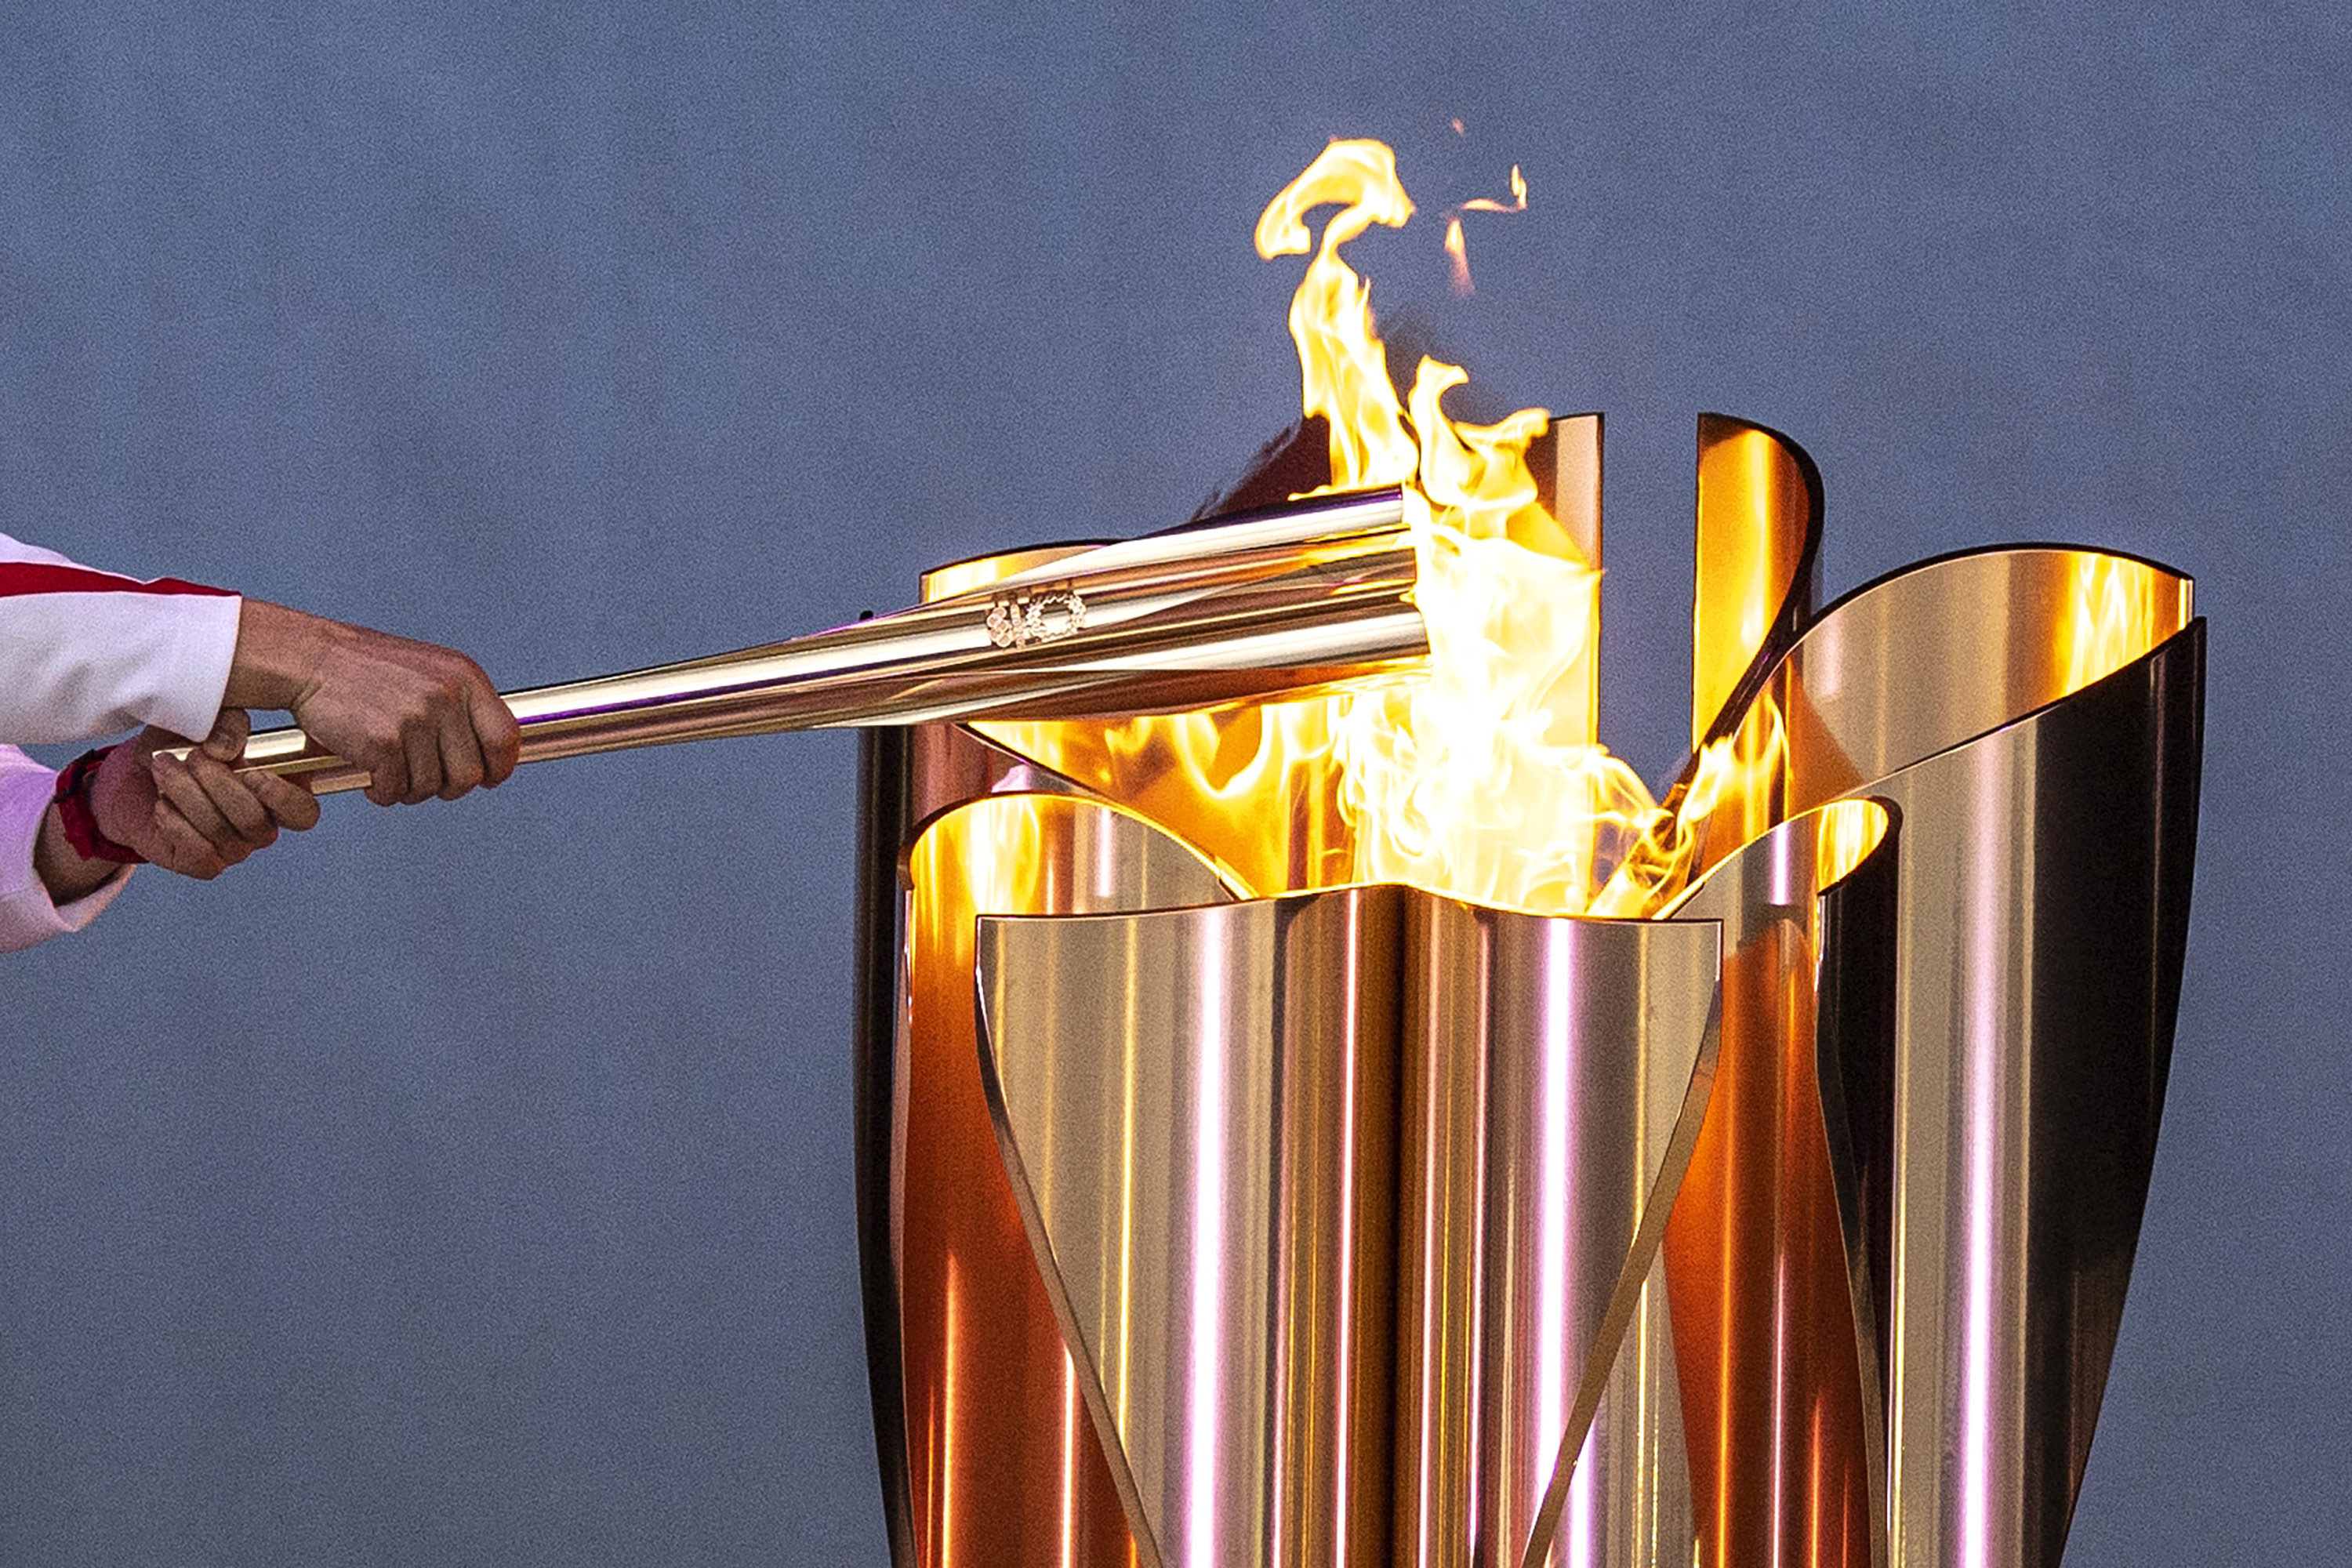 The celebration cauldron is lit during the Tokyo 2020 Olympic torch relay in Minamisoma, Japan, on March 25.